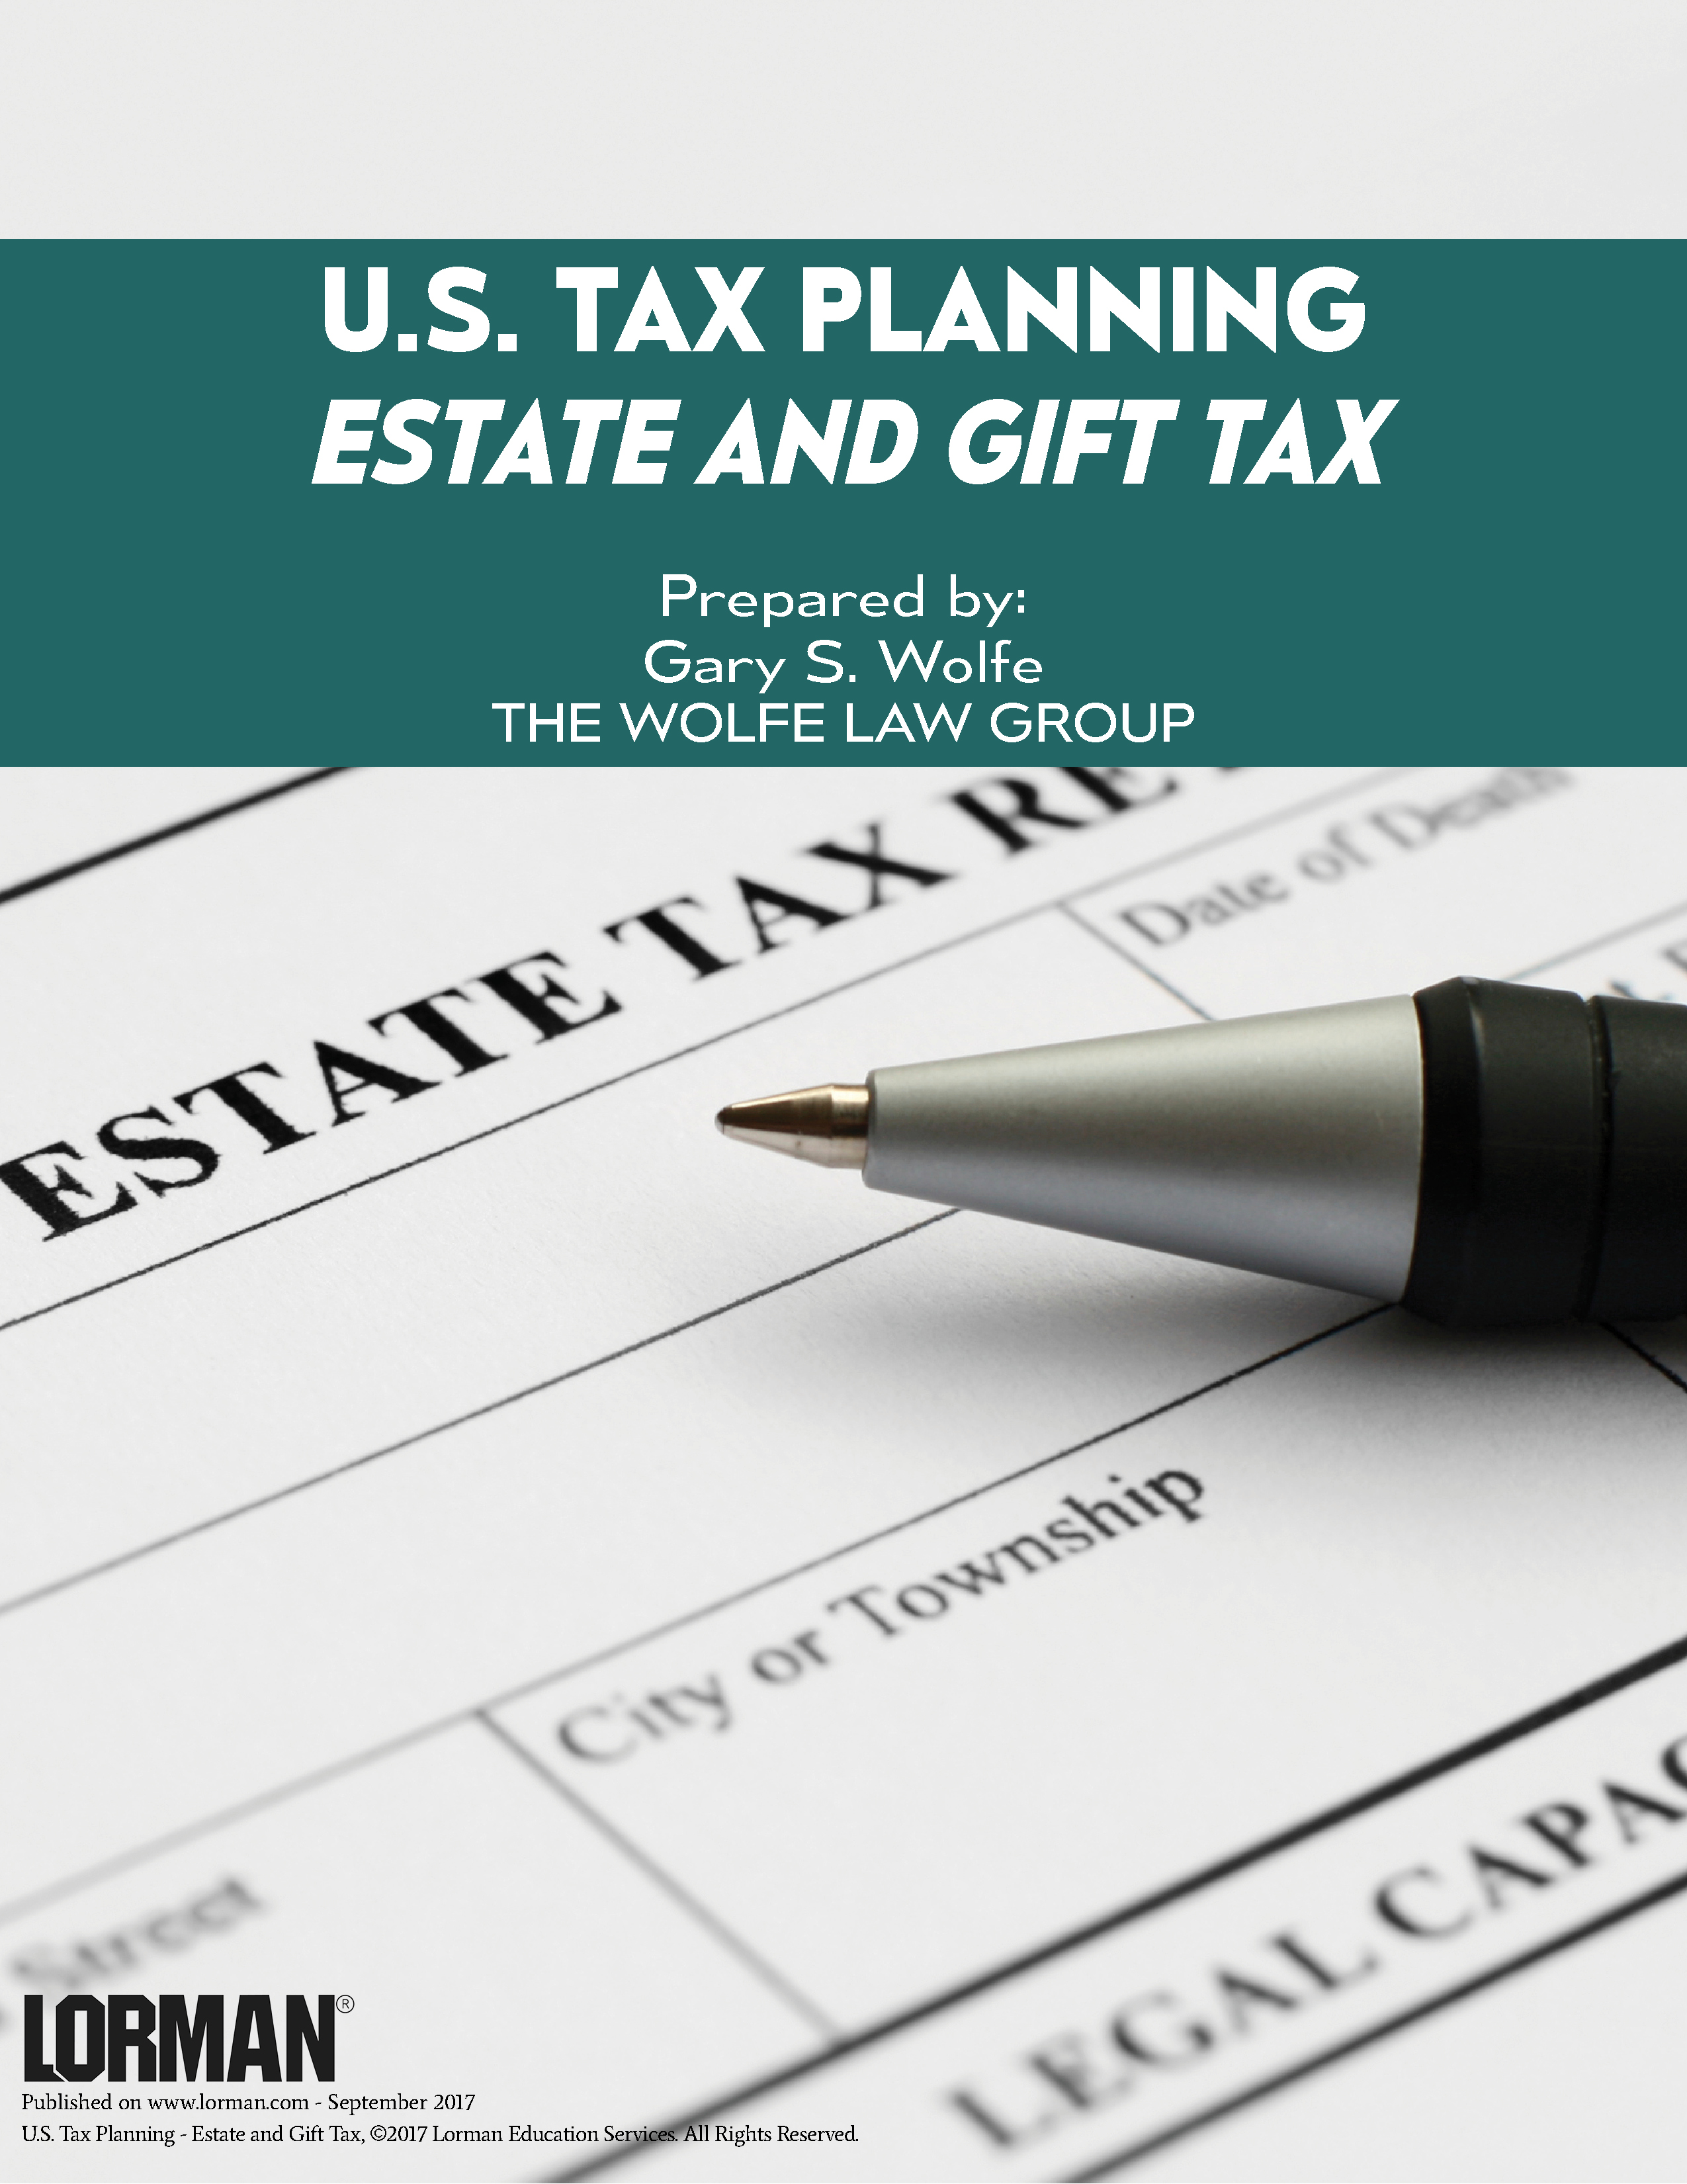 U.S. Tax Planning - Estate and Gift Tax